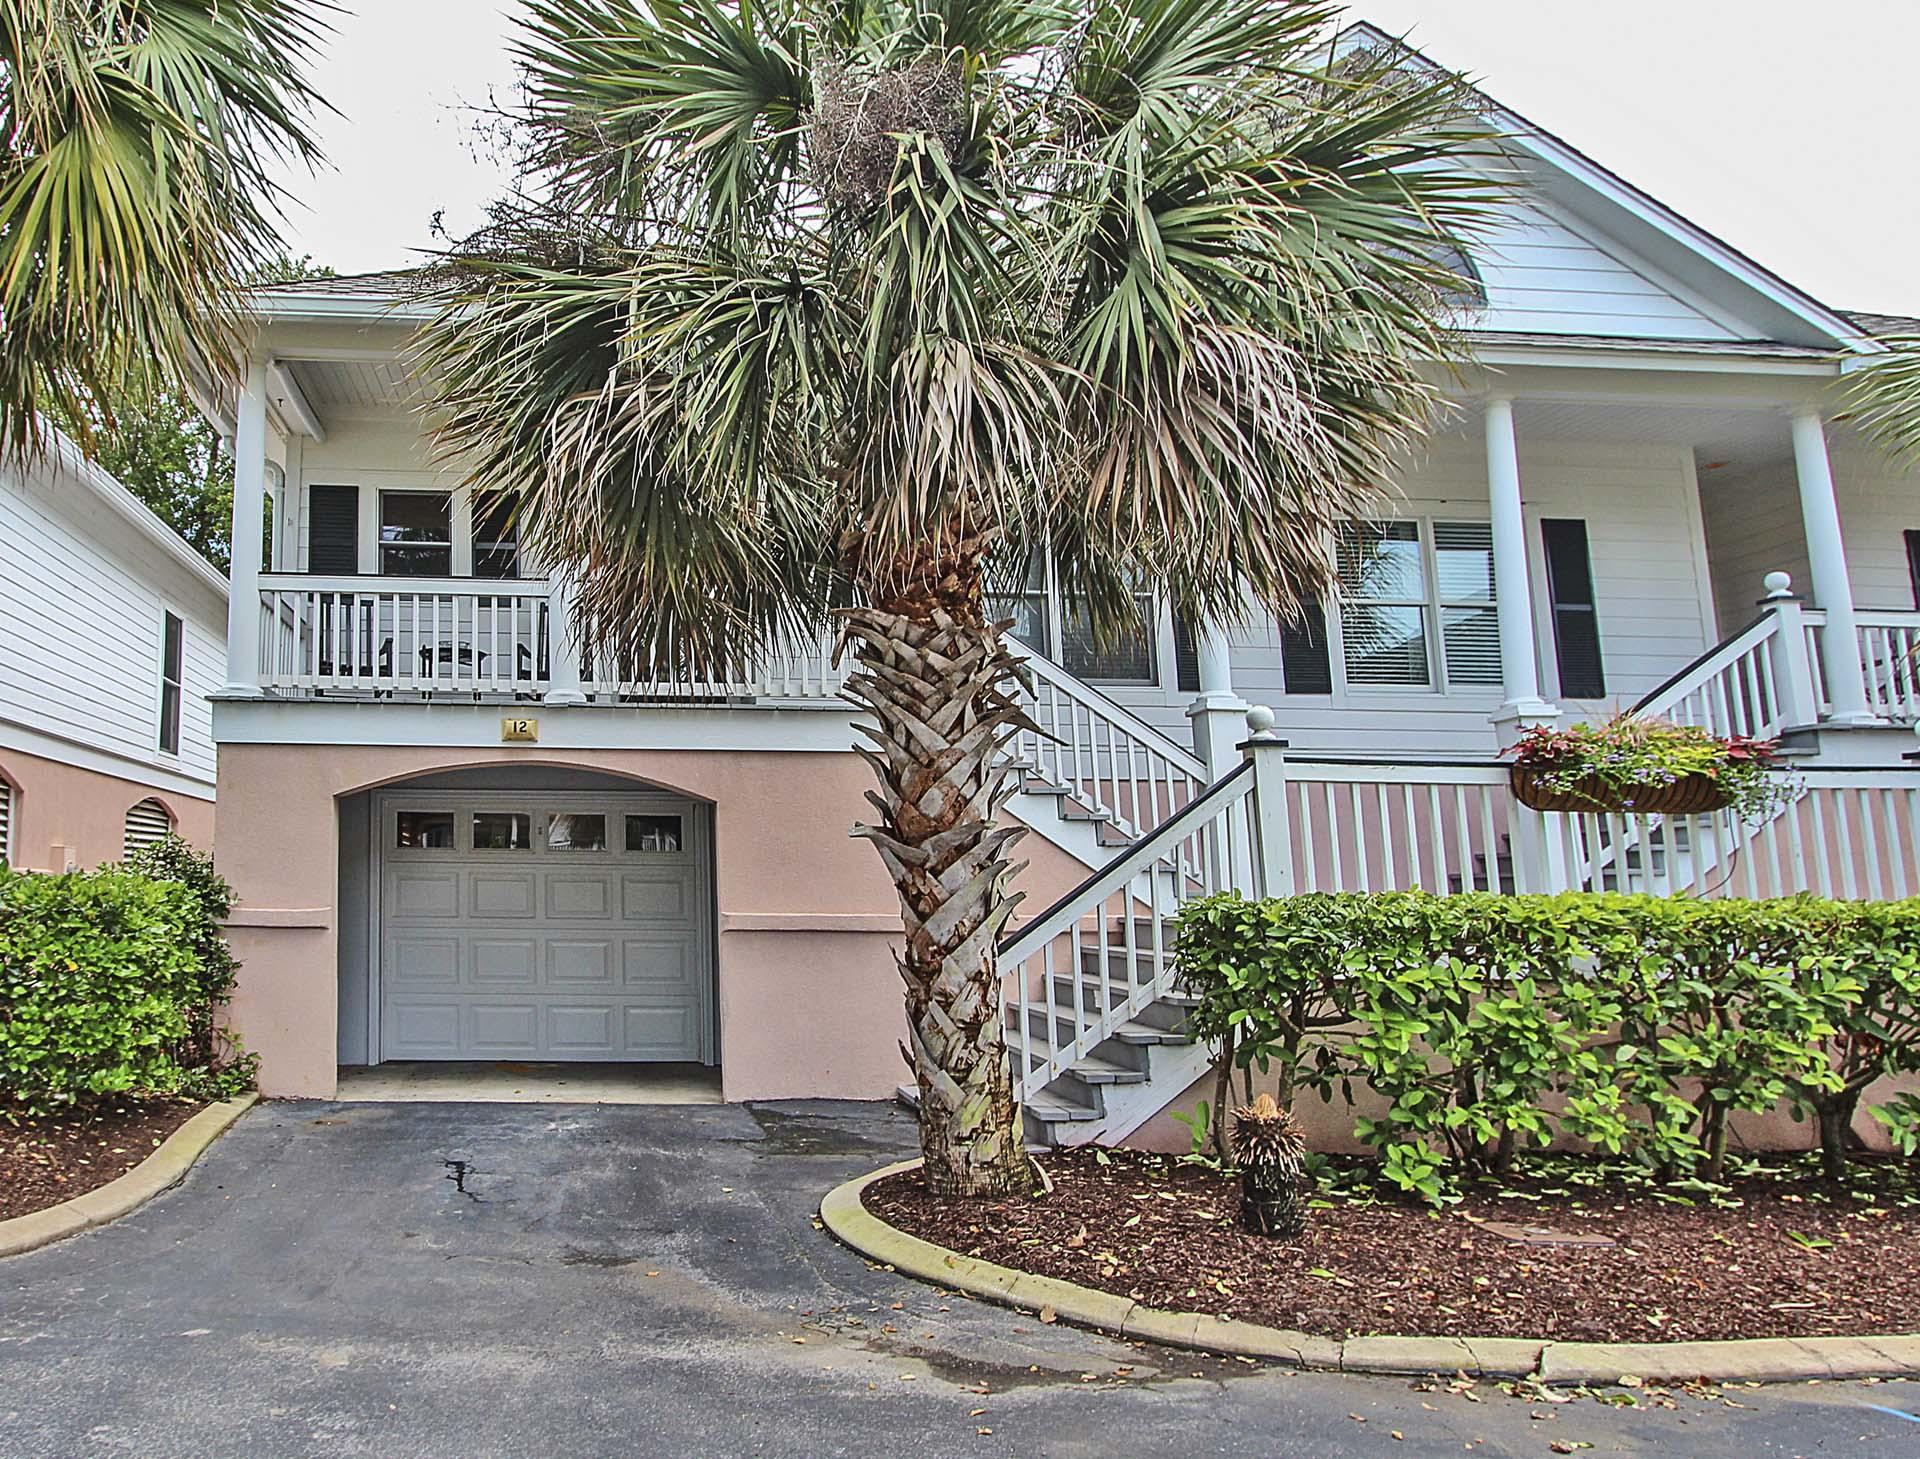 12 links clubhouse villas isle of palms 29451 mls 18023435